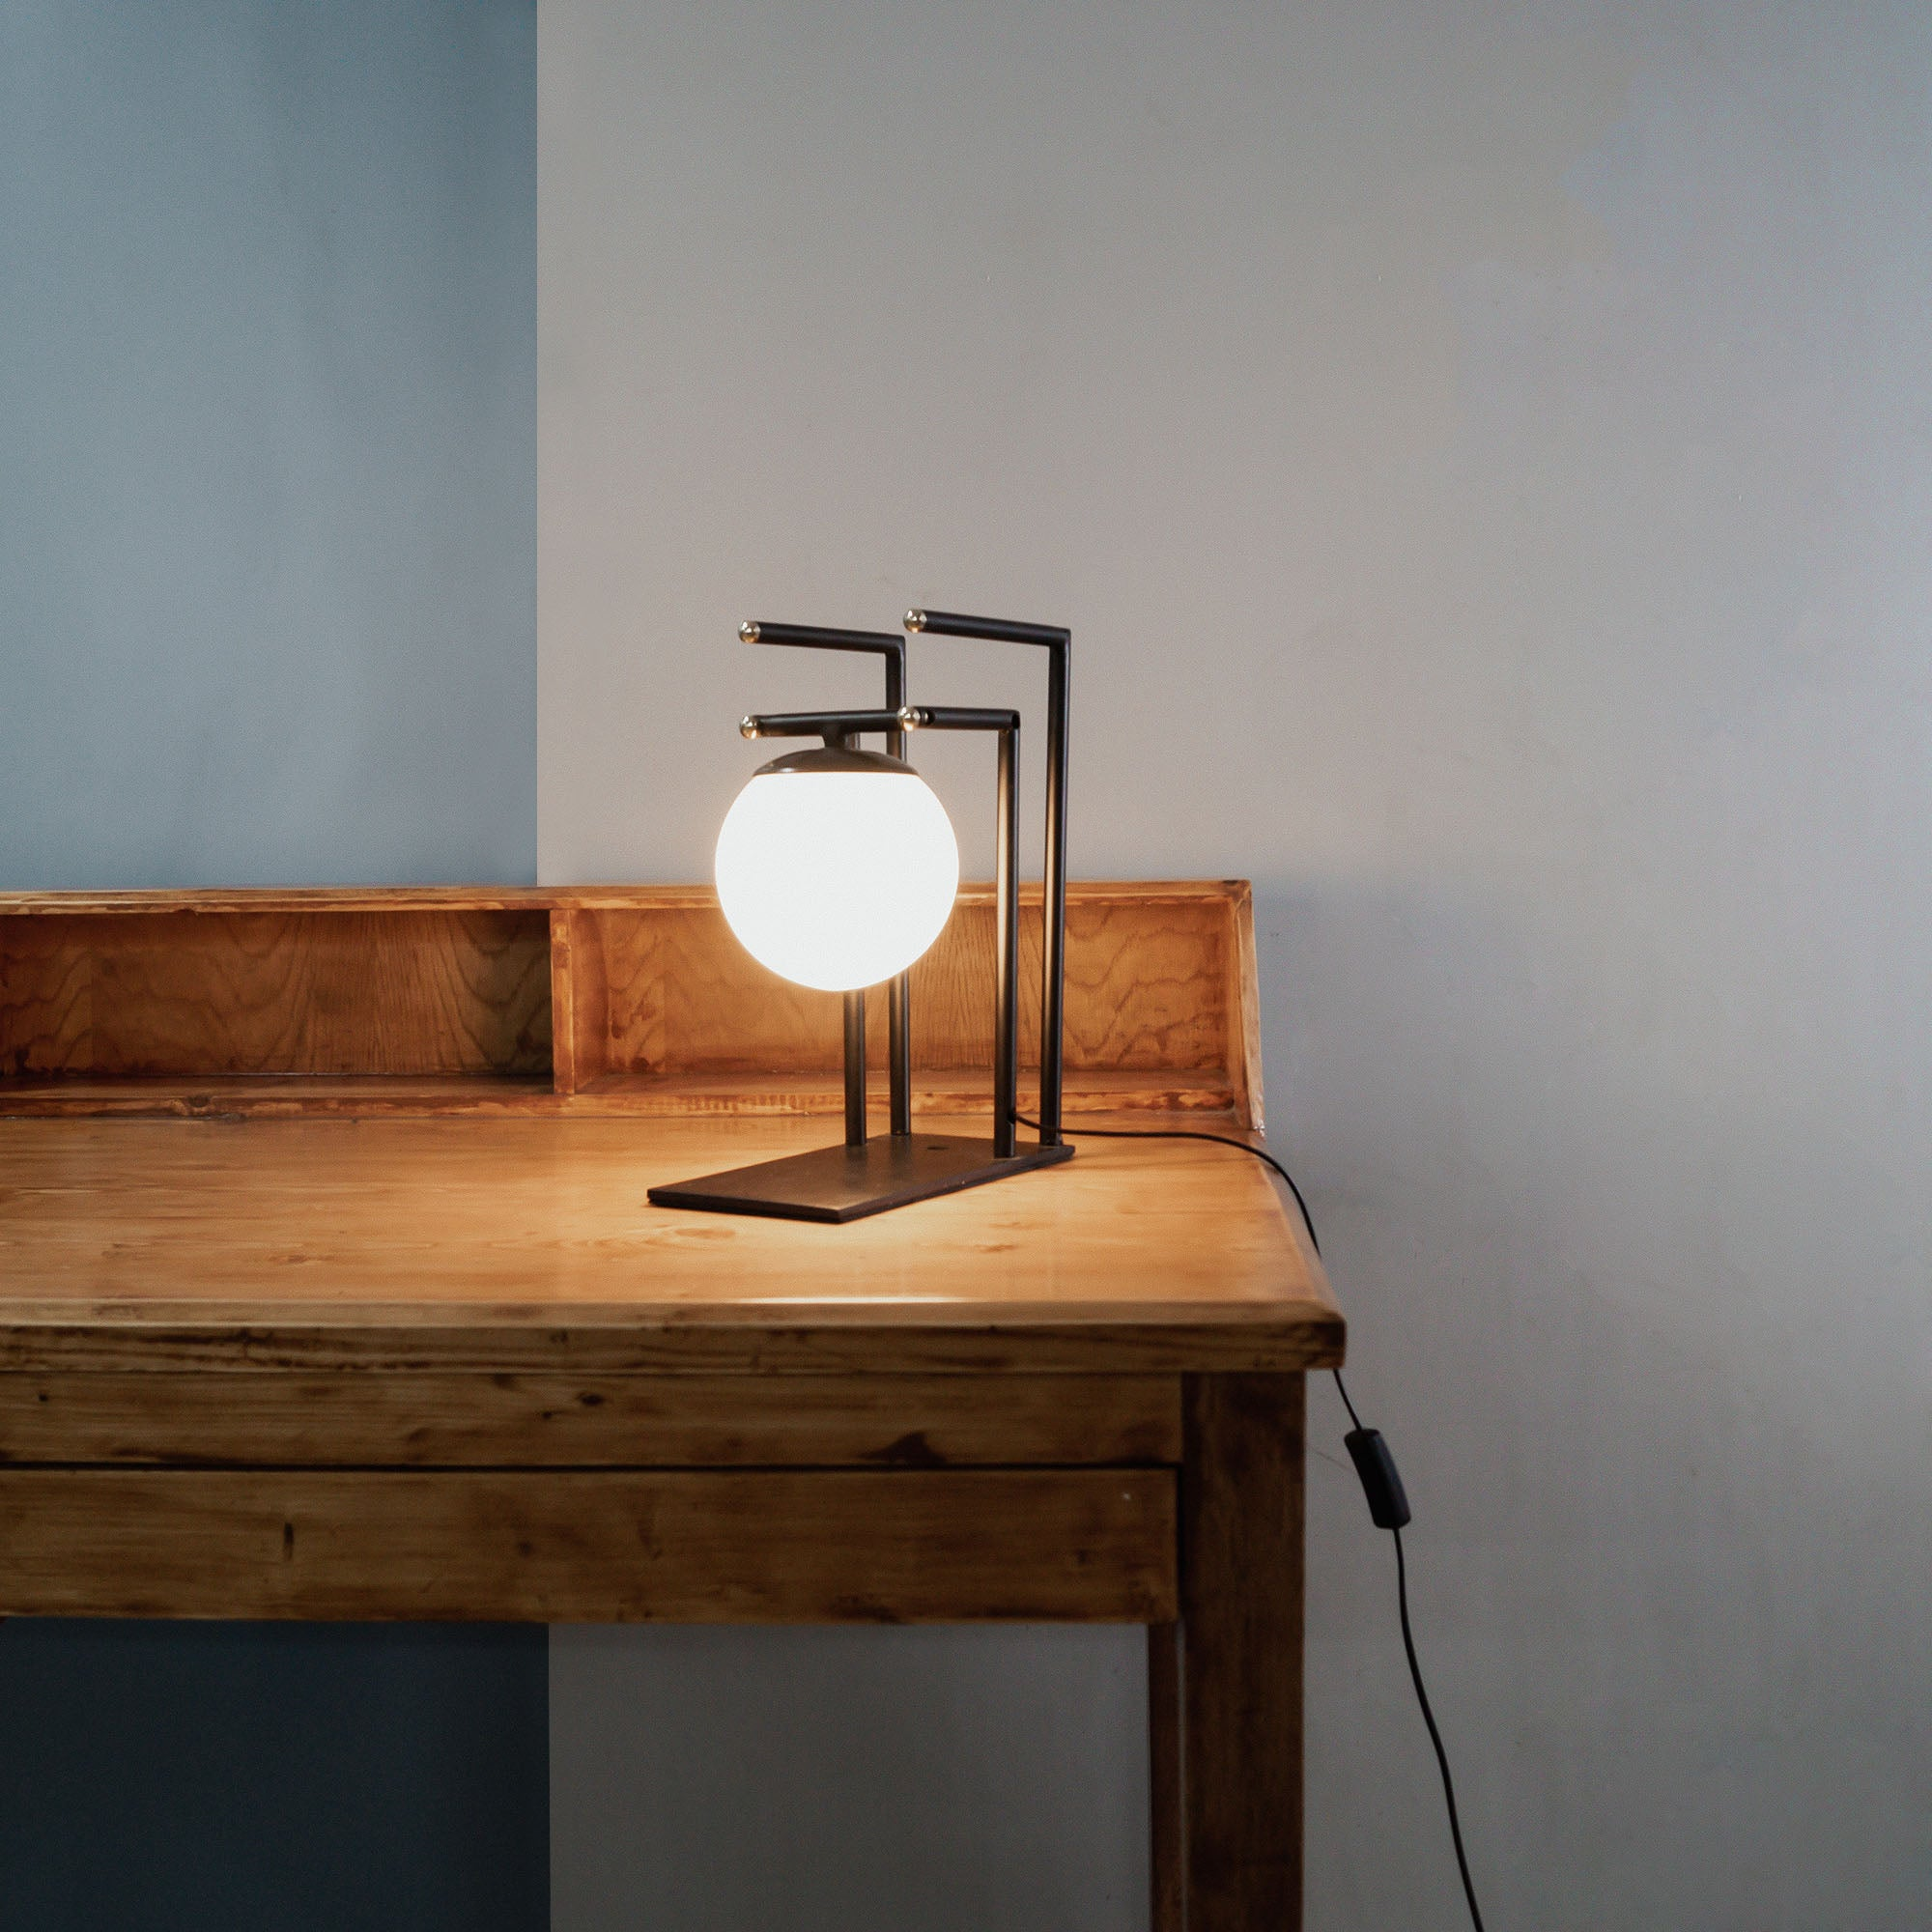 Buy designer table lamps stylish wooden table Design idea